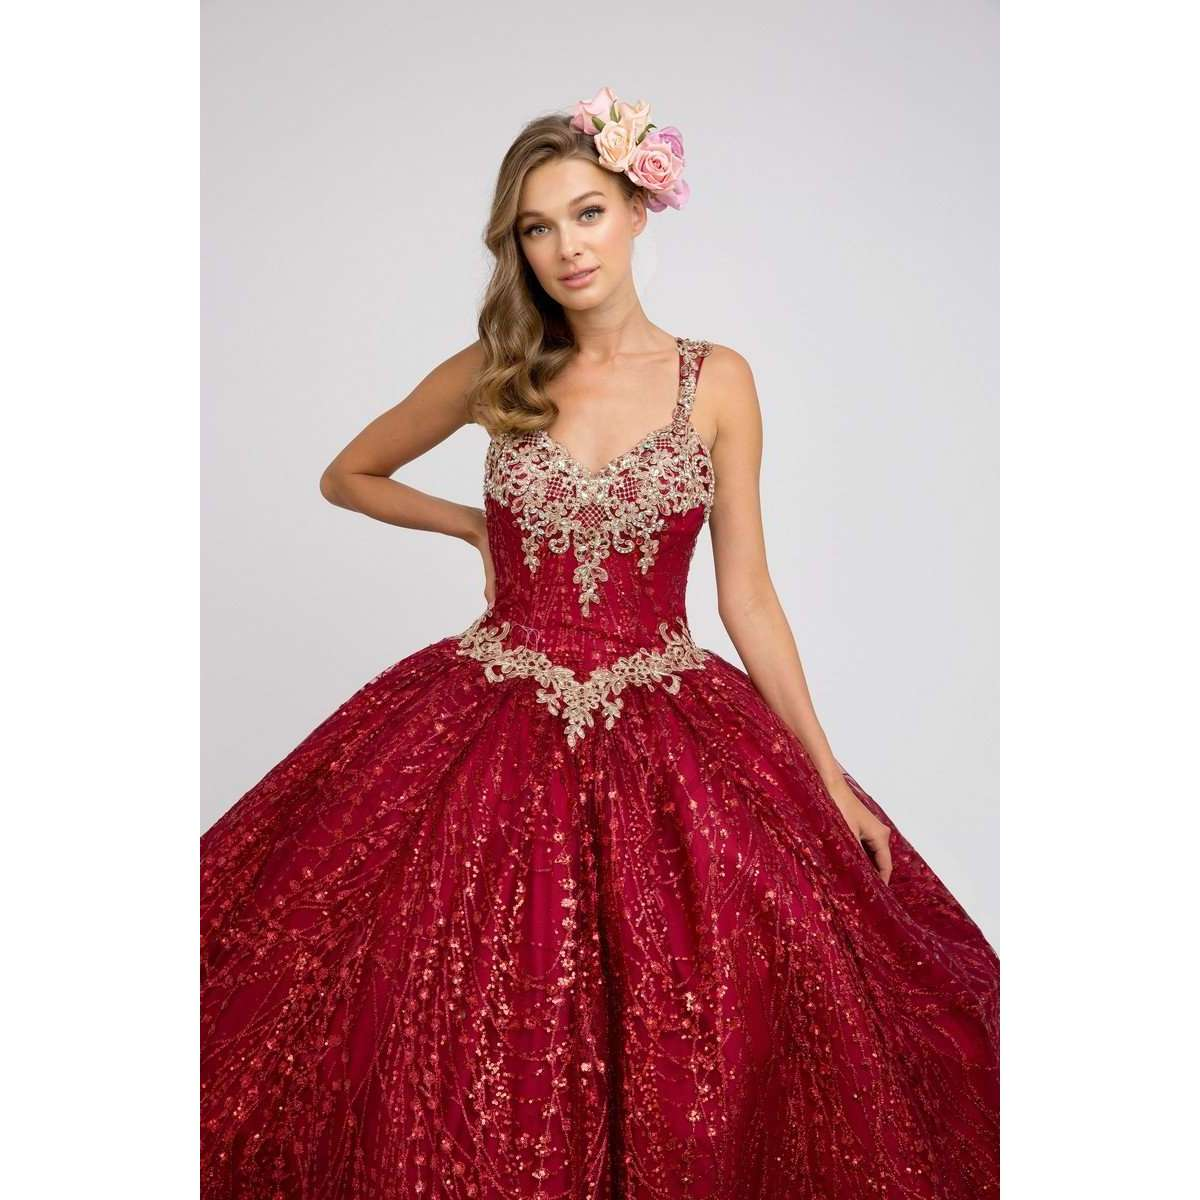 Sweetheart Neckline Glitter Tulle Ball Gown 1428 - Julietdresses